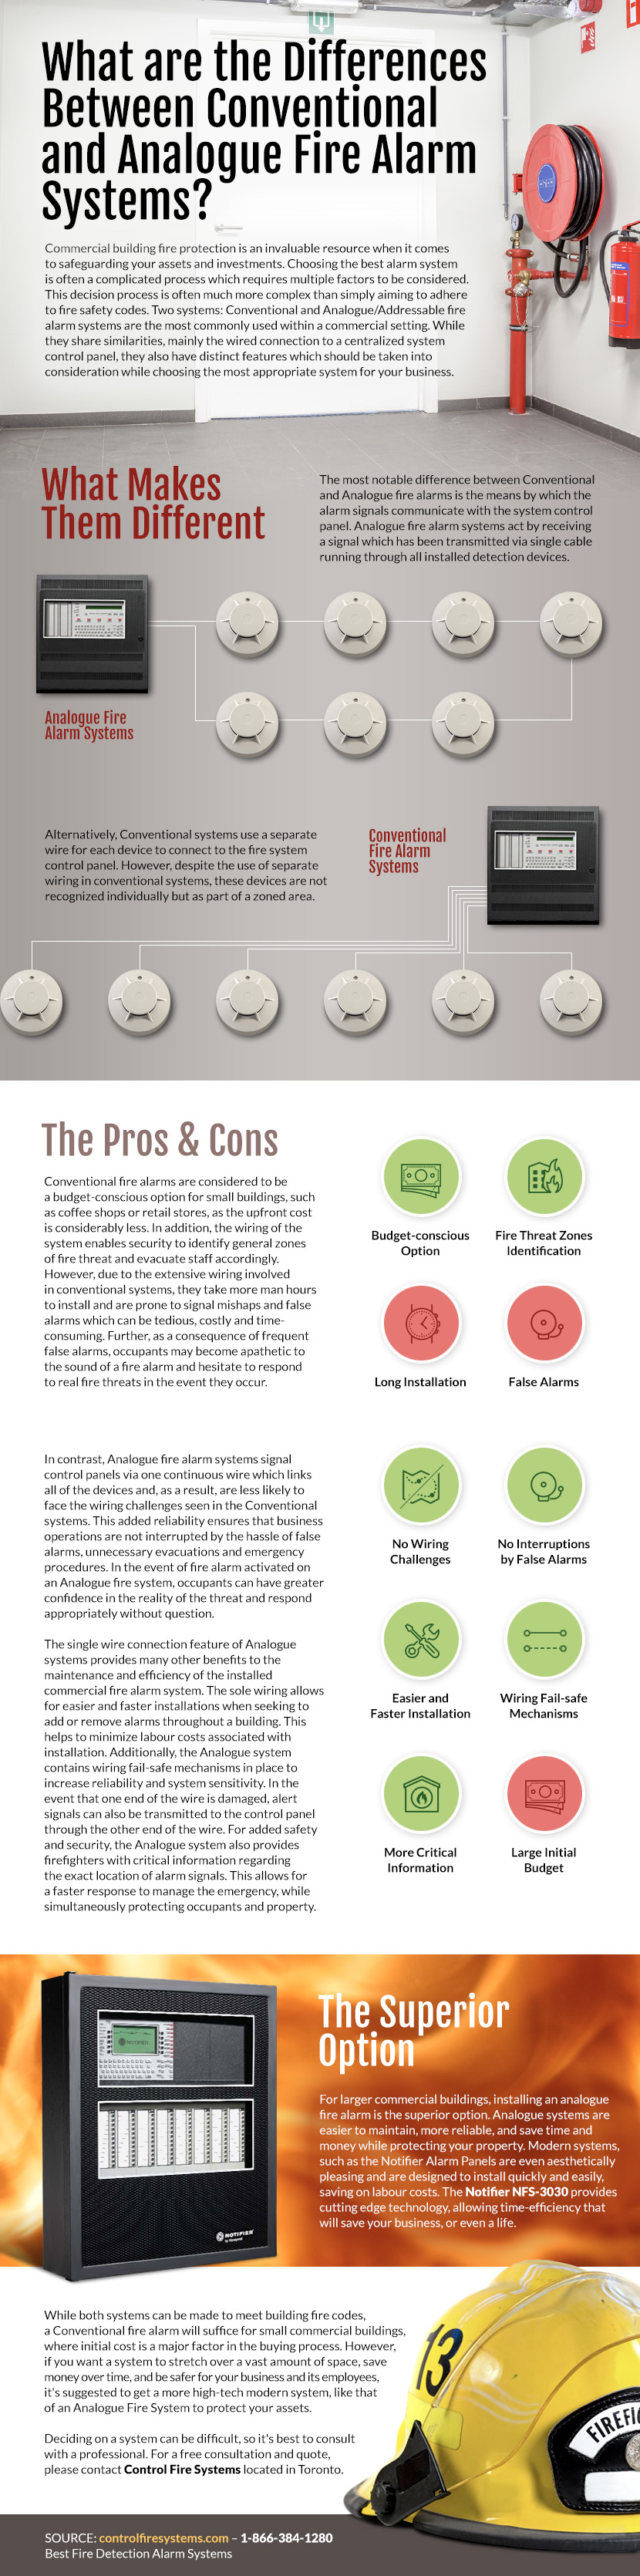 What Are the Differences Between Conventional and Analogue (Addressable) Fire Alarm Systems? - Control Fire Systems Ifographic